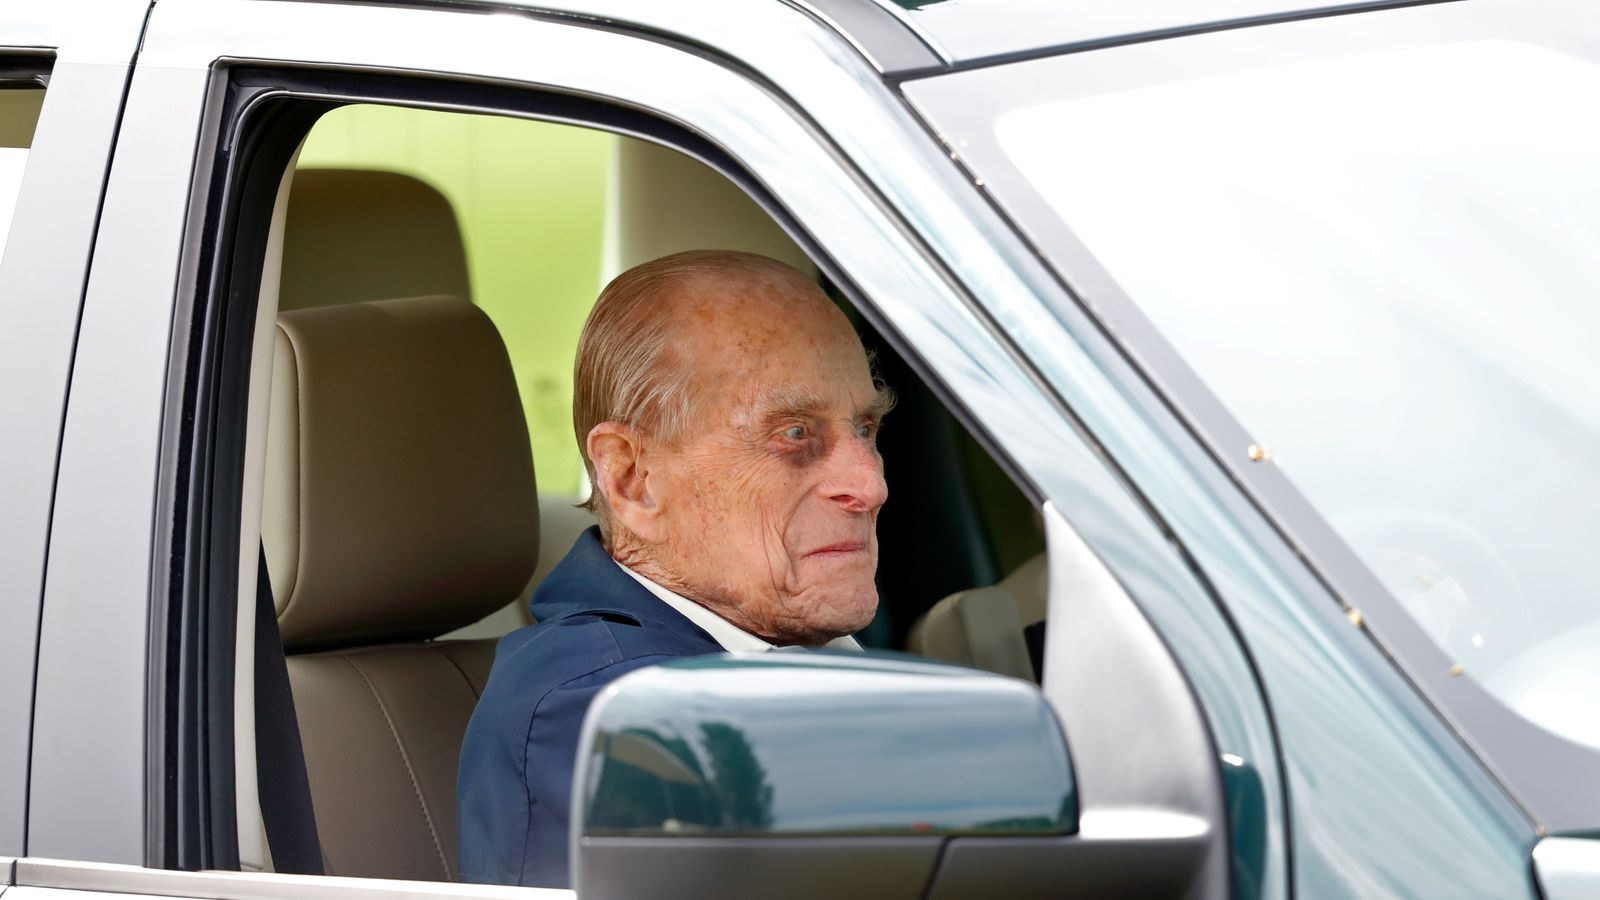 Speed limit to be cut on road where Prince Philip crashed his car after spate of serious accidents